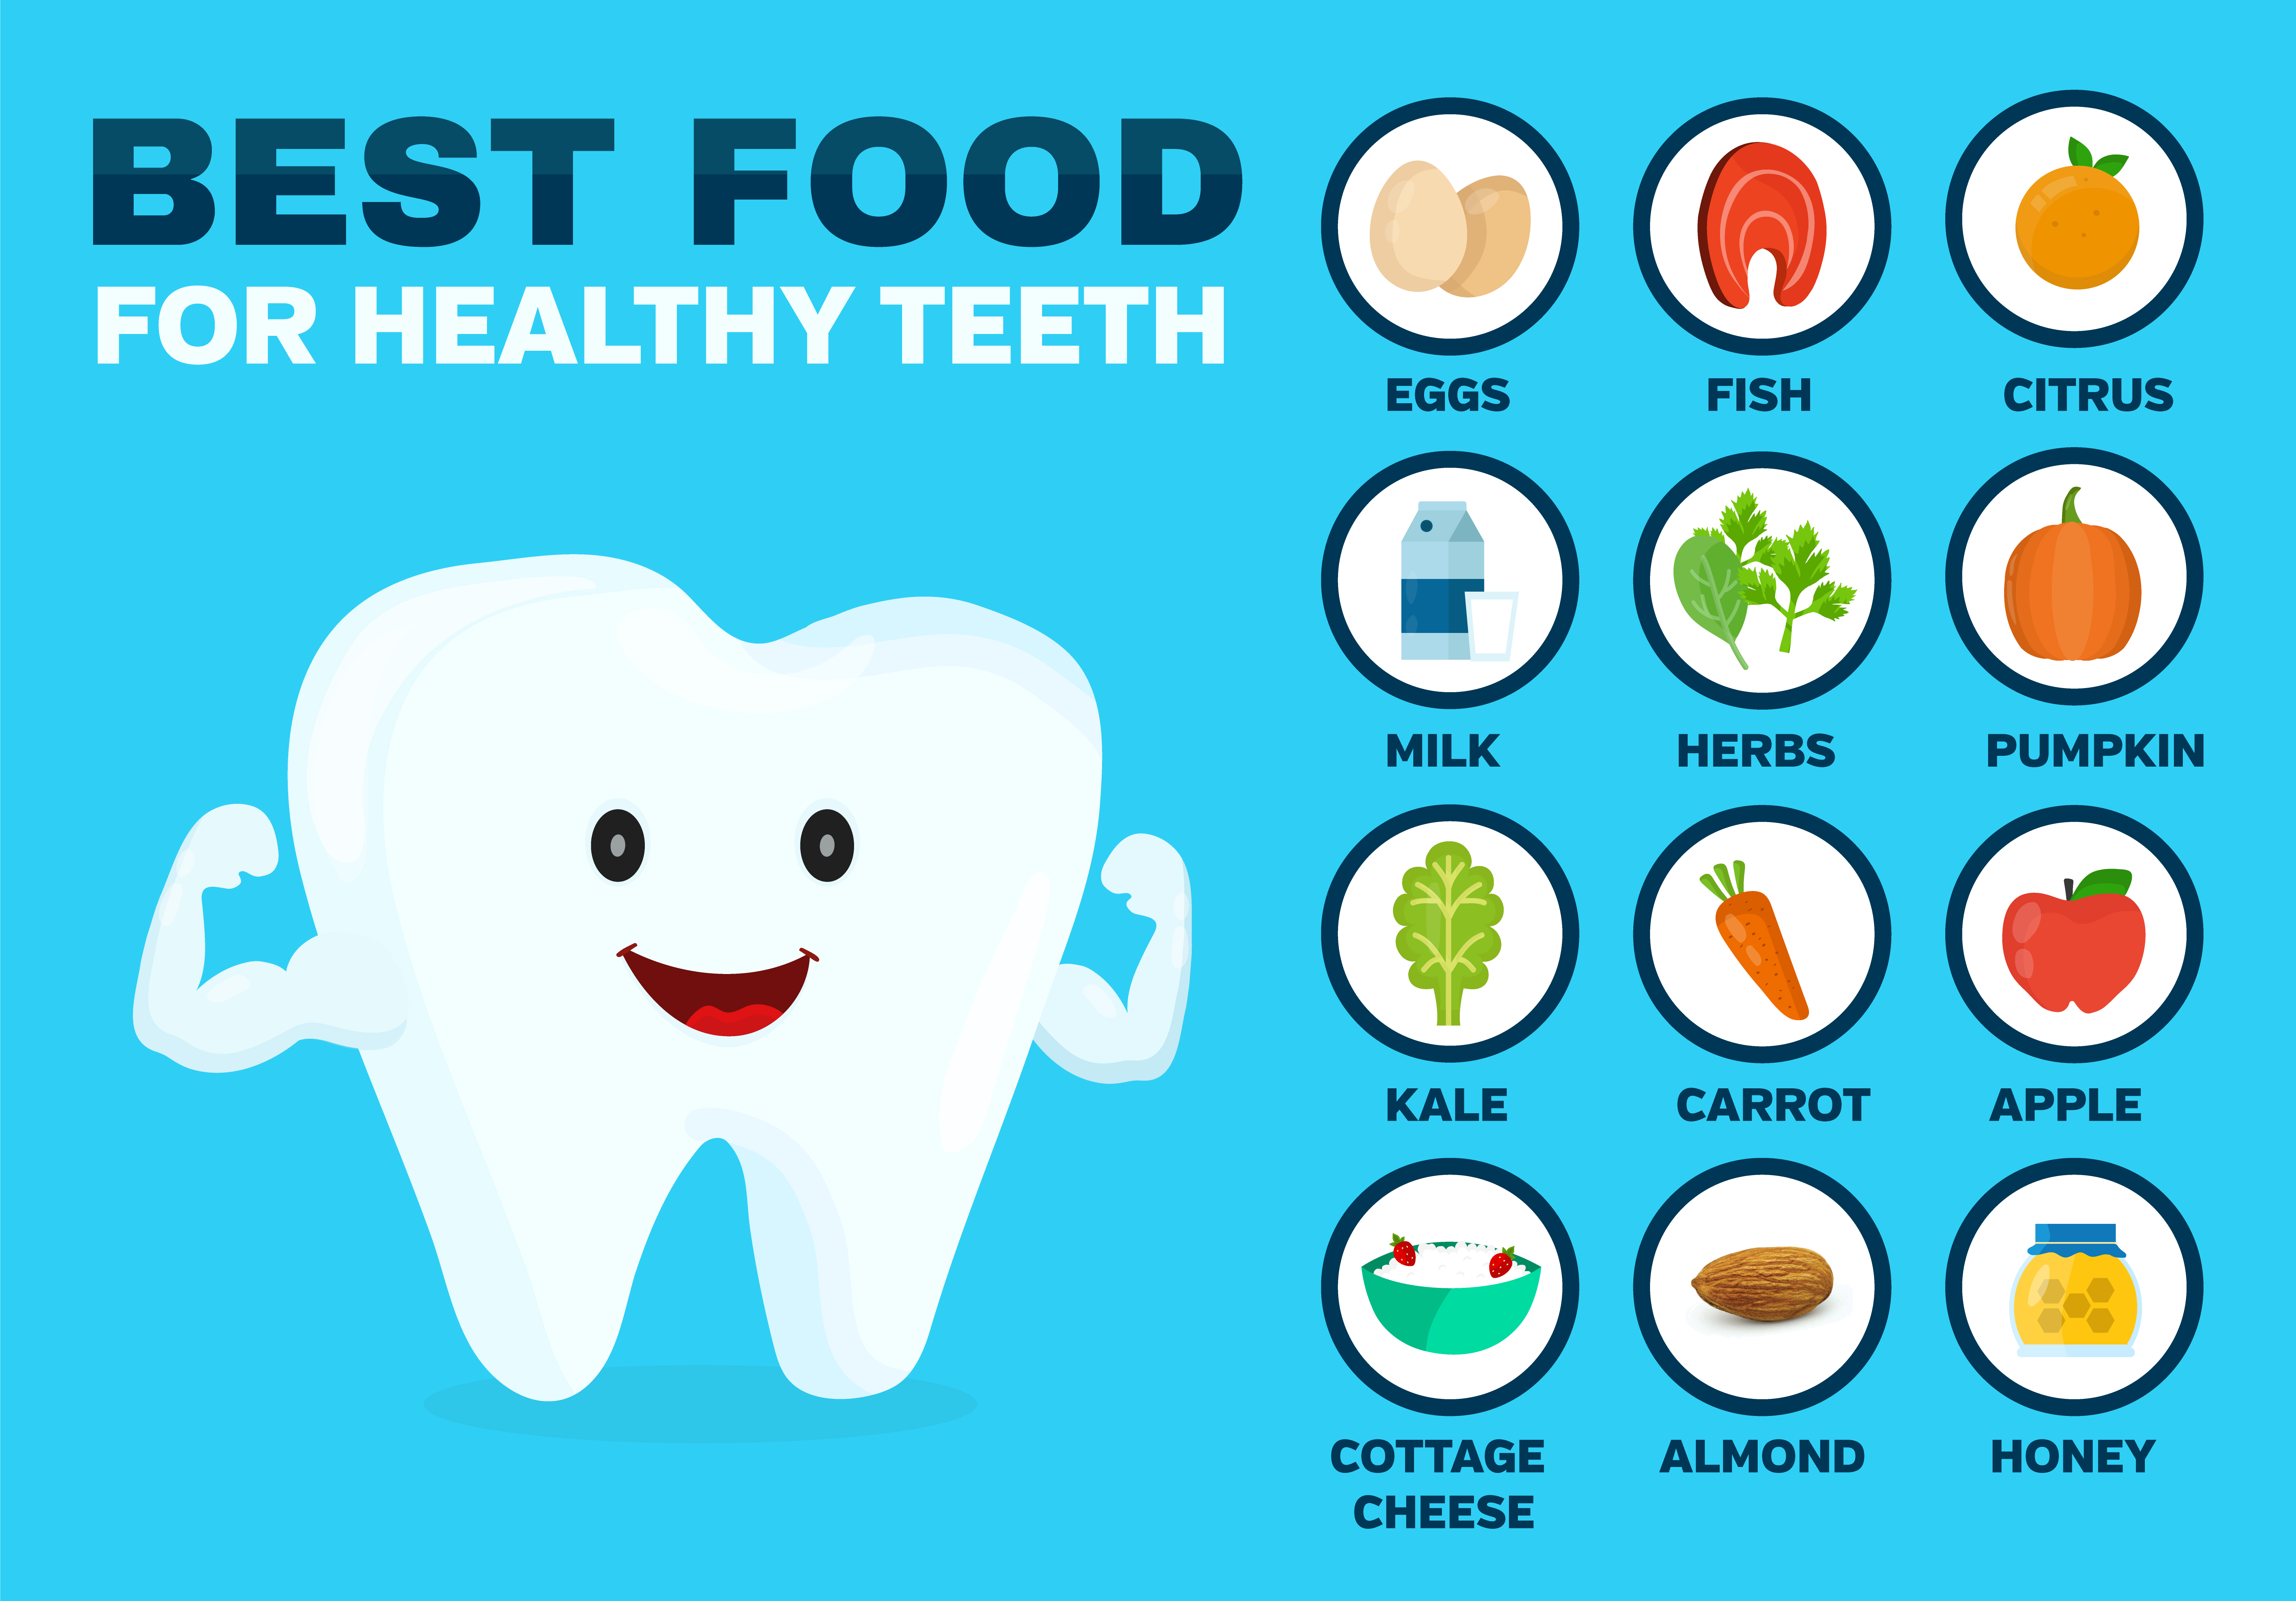 Foods for Healthy Teeth